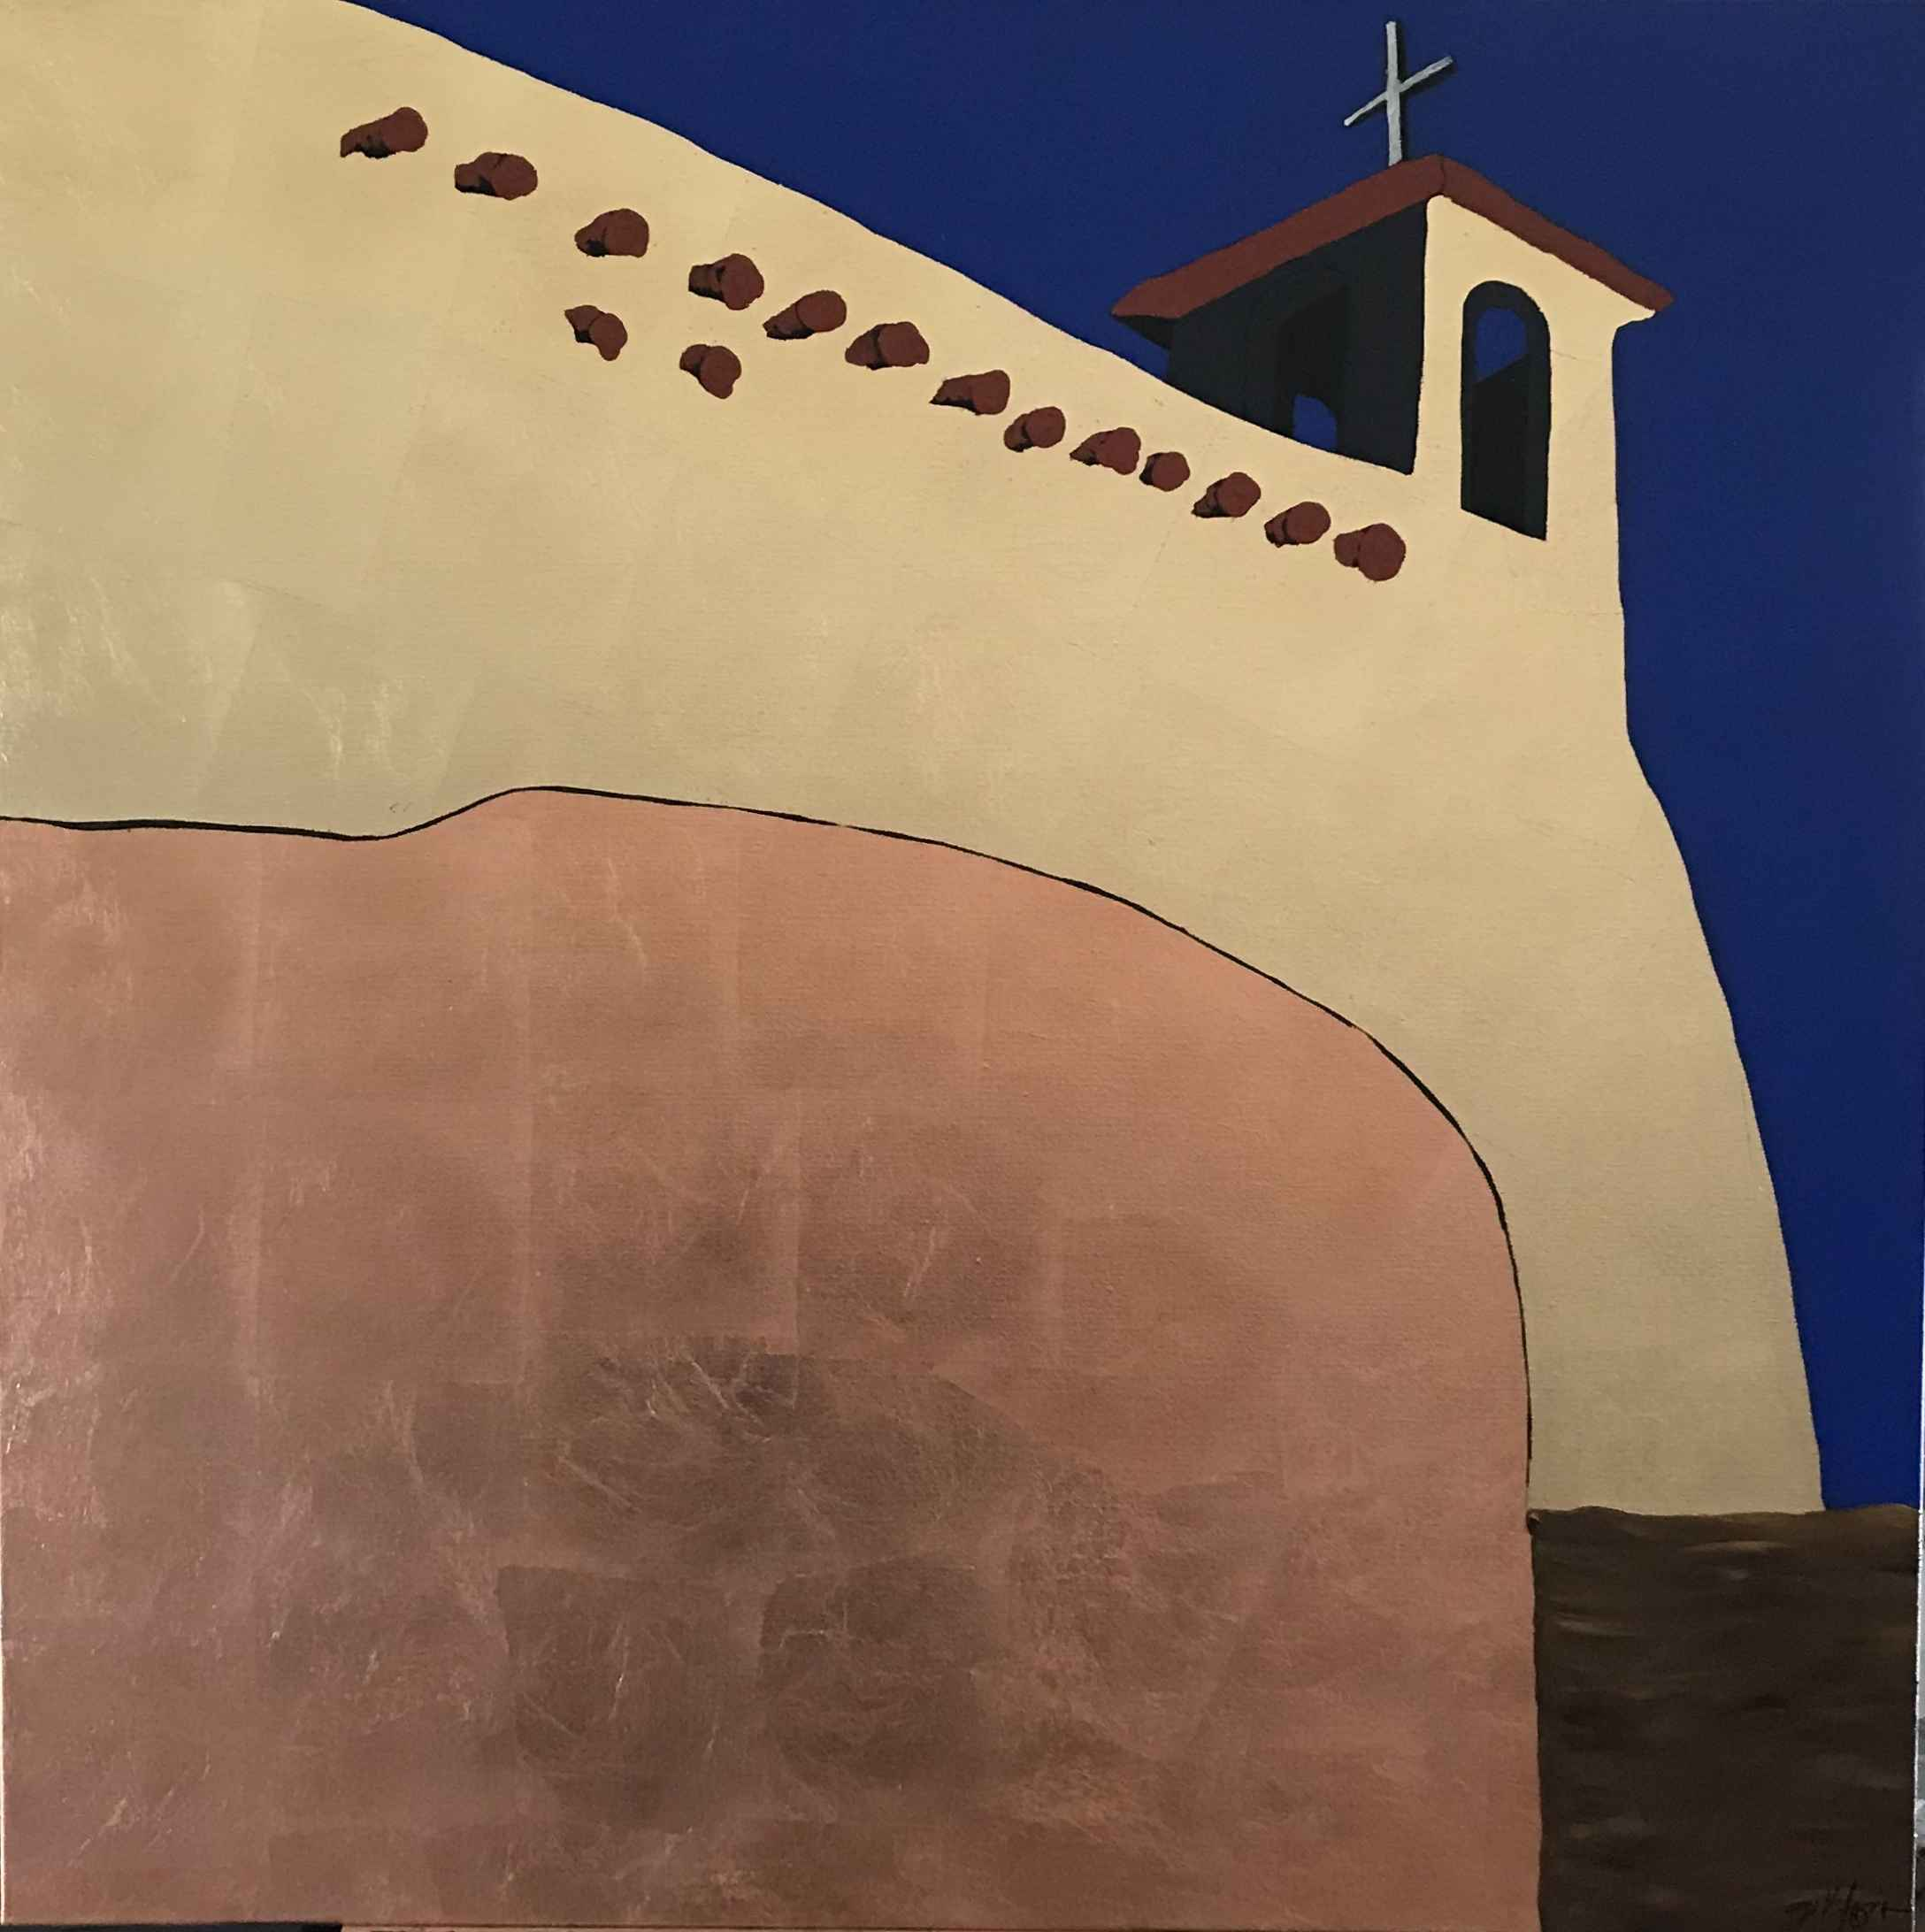 Dusk At Ranchos by  Alvin Gill-Tapia - Masterpiece Online